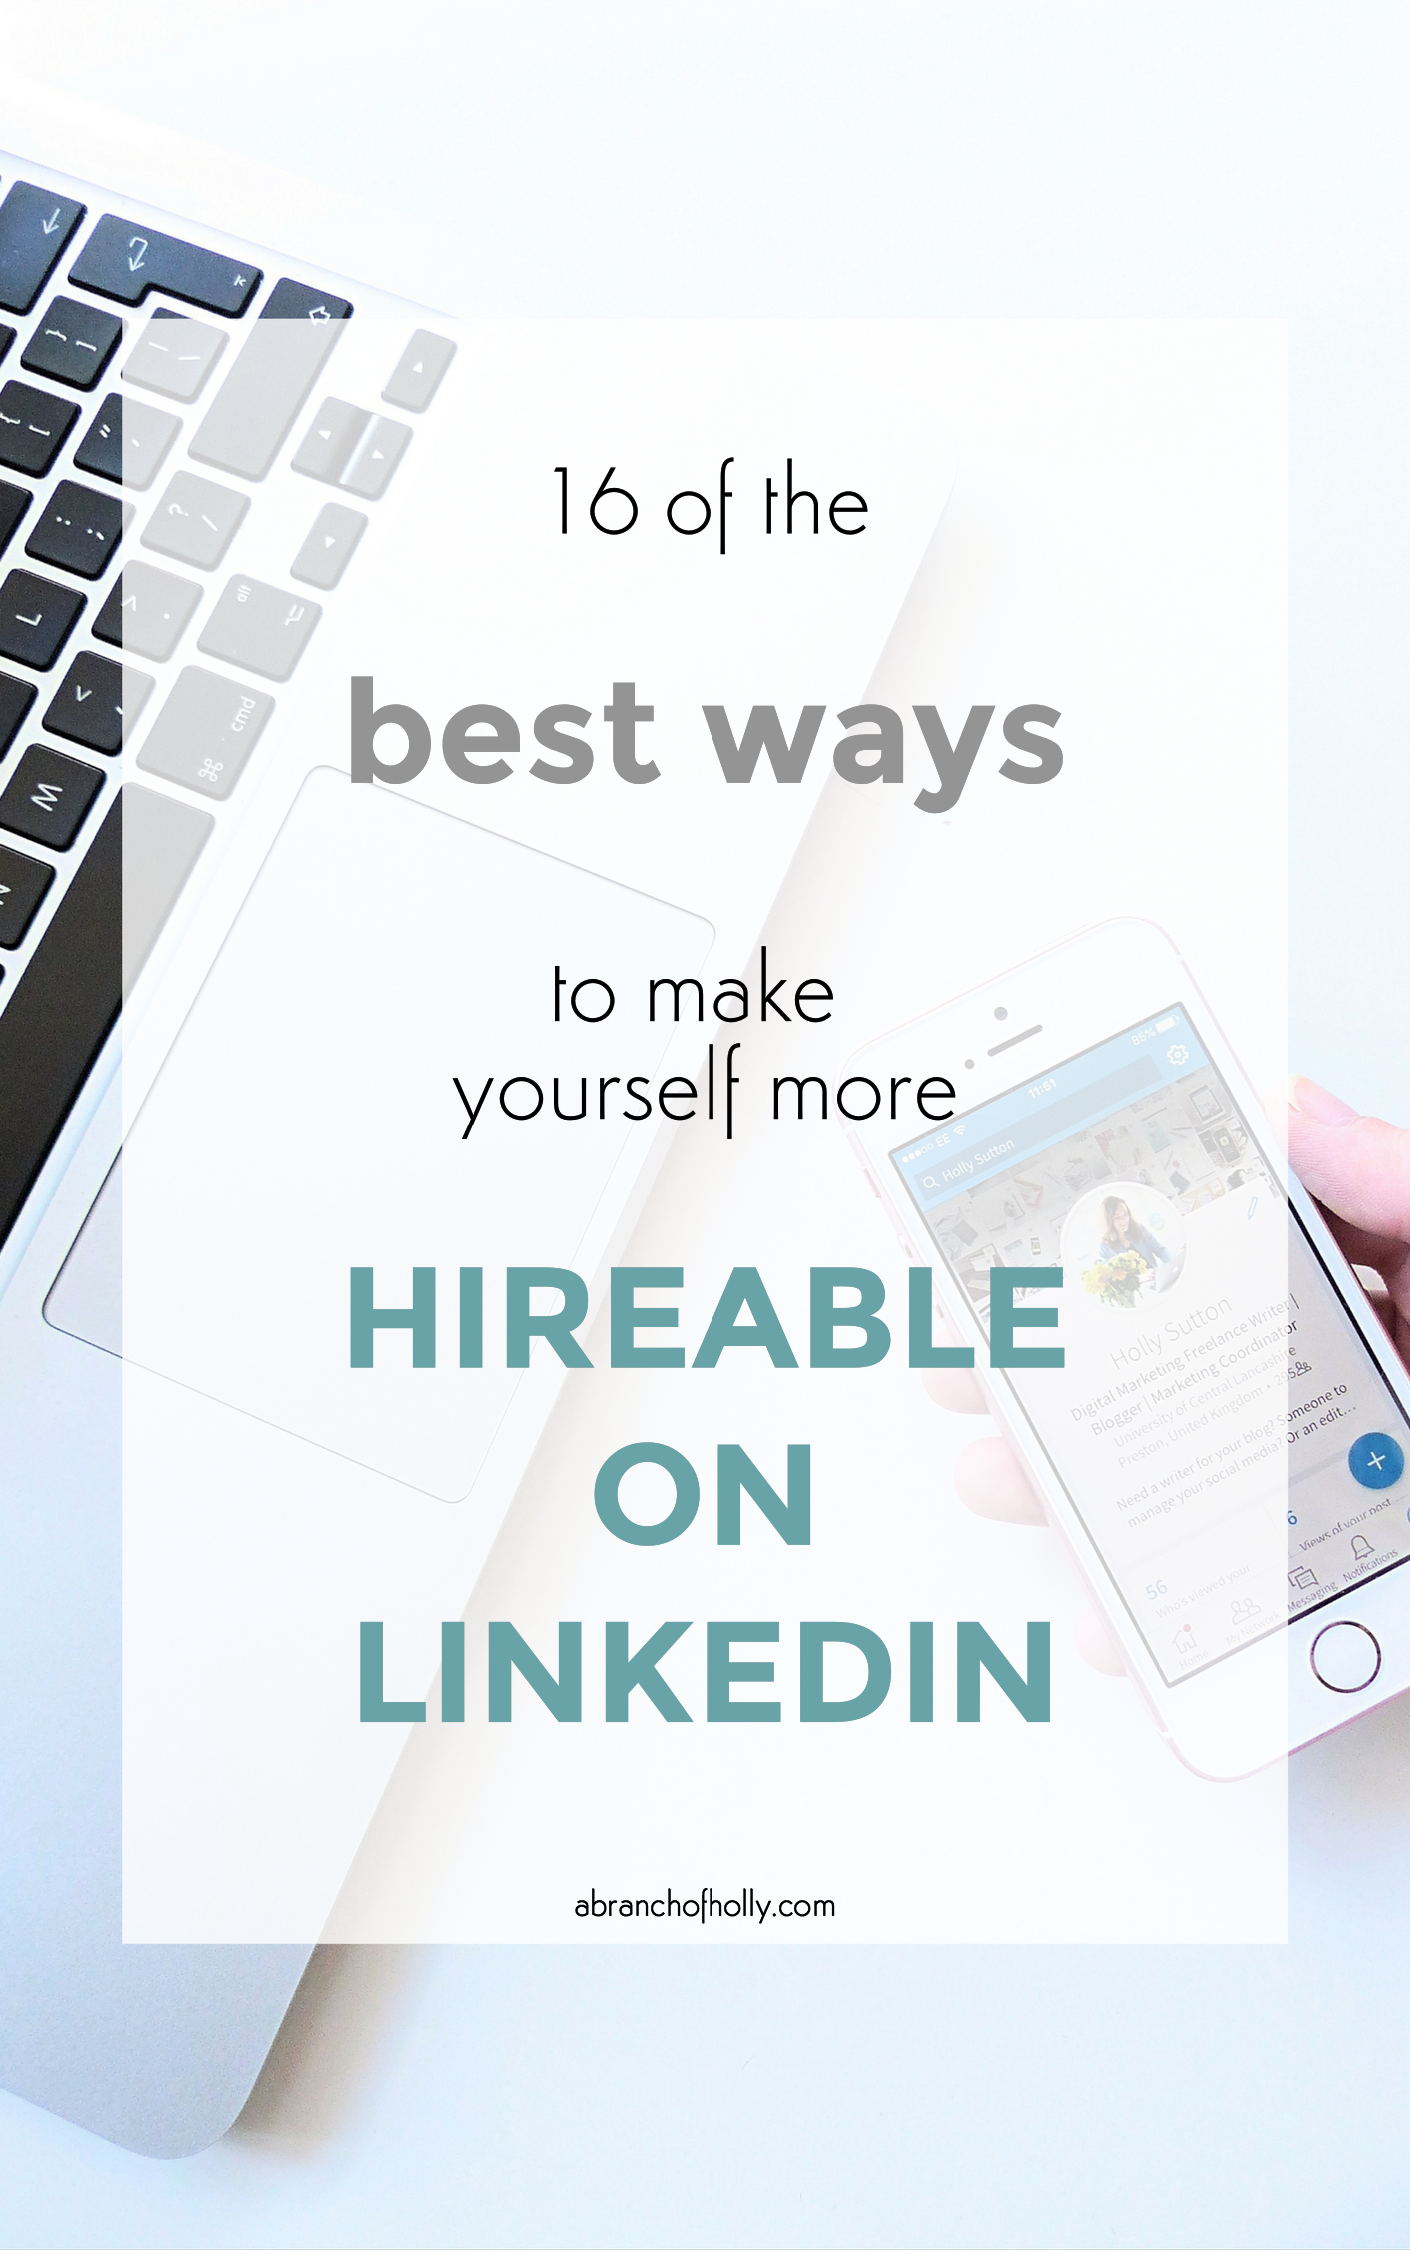 16 of the best ways to make yourself more hireable on linkedin